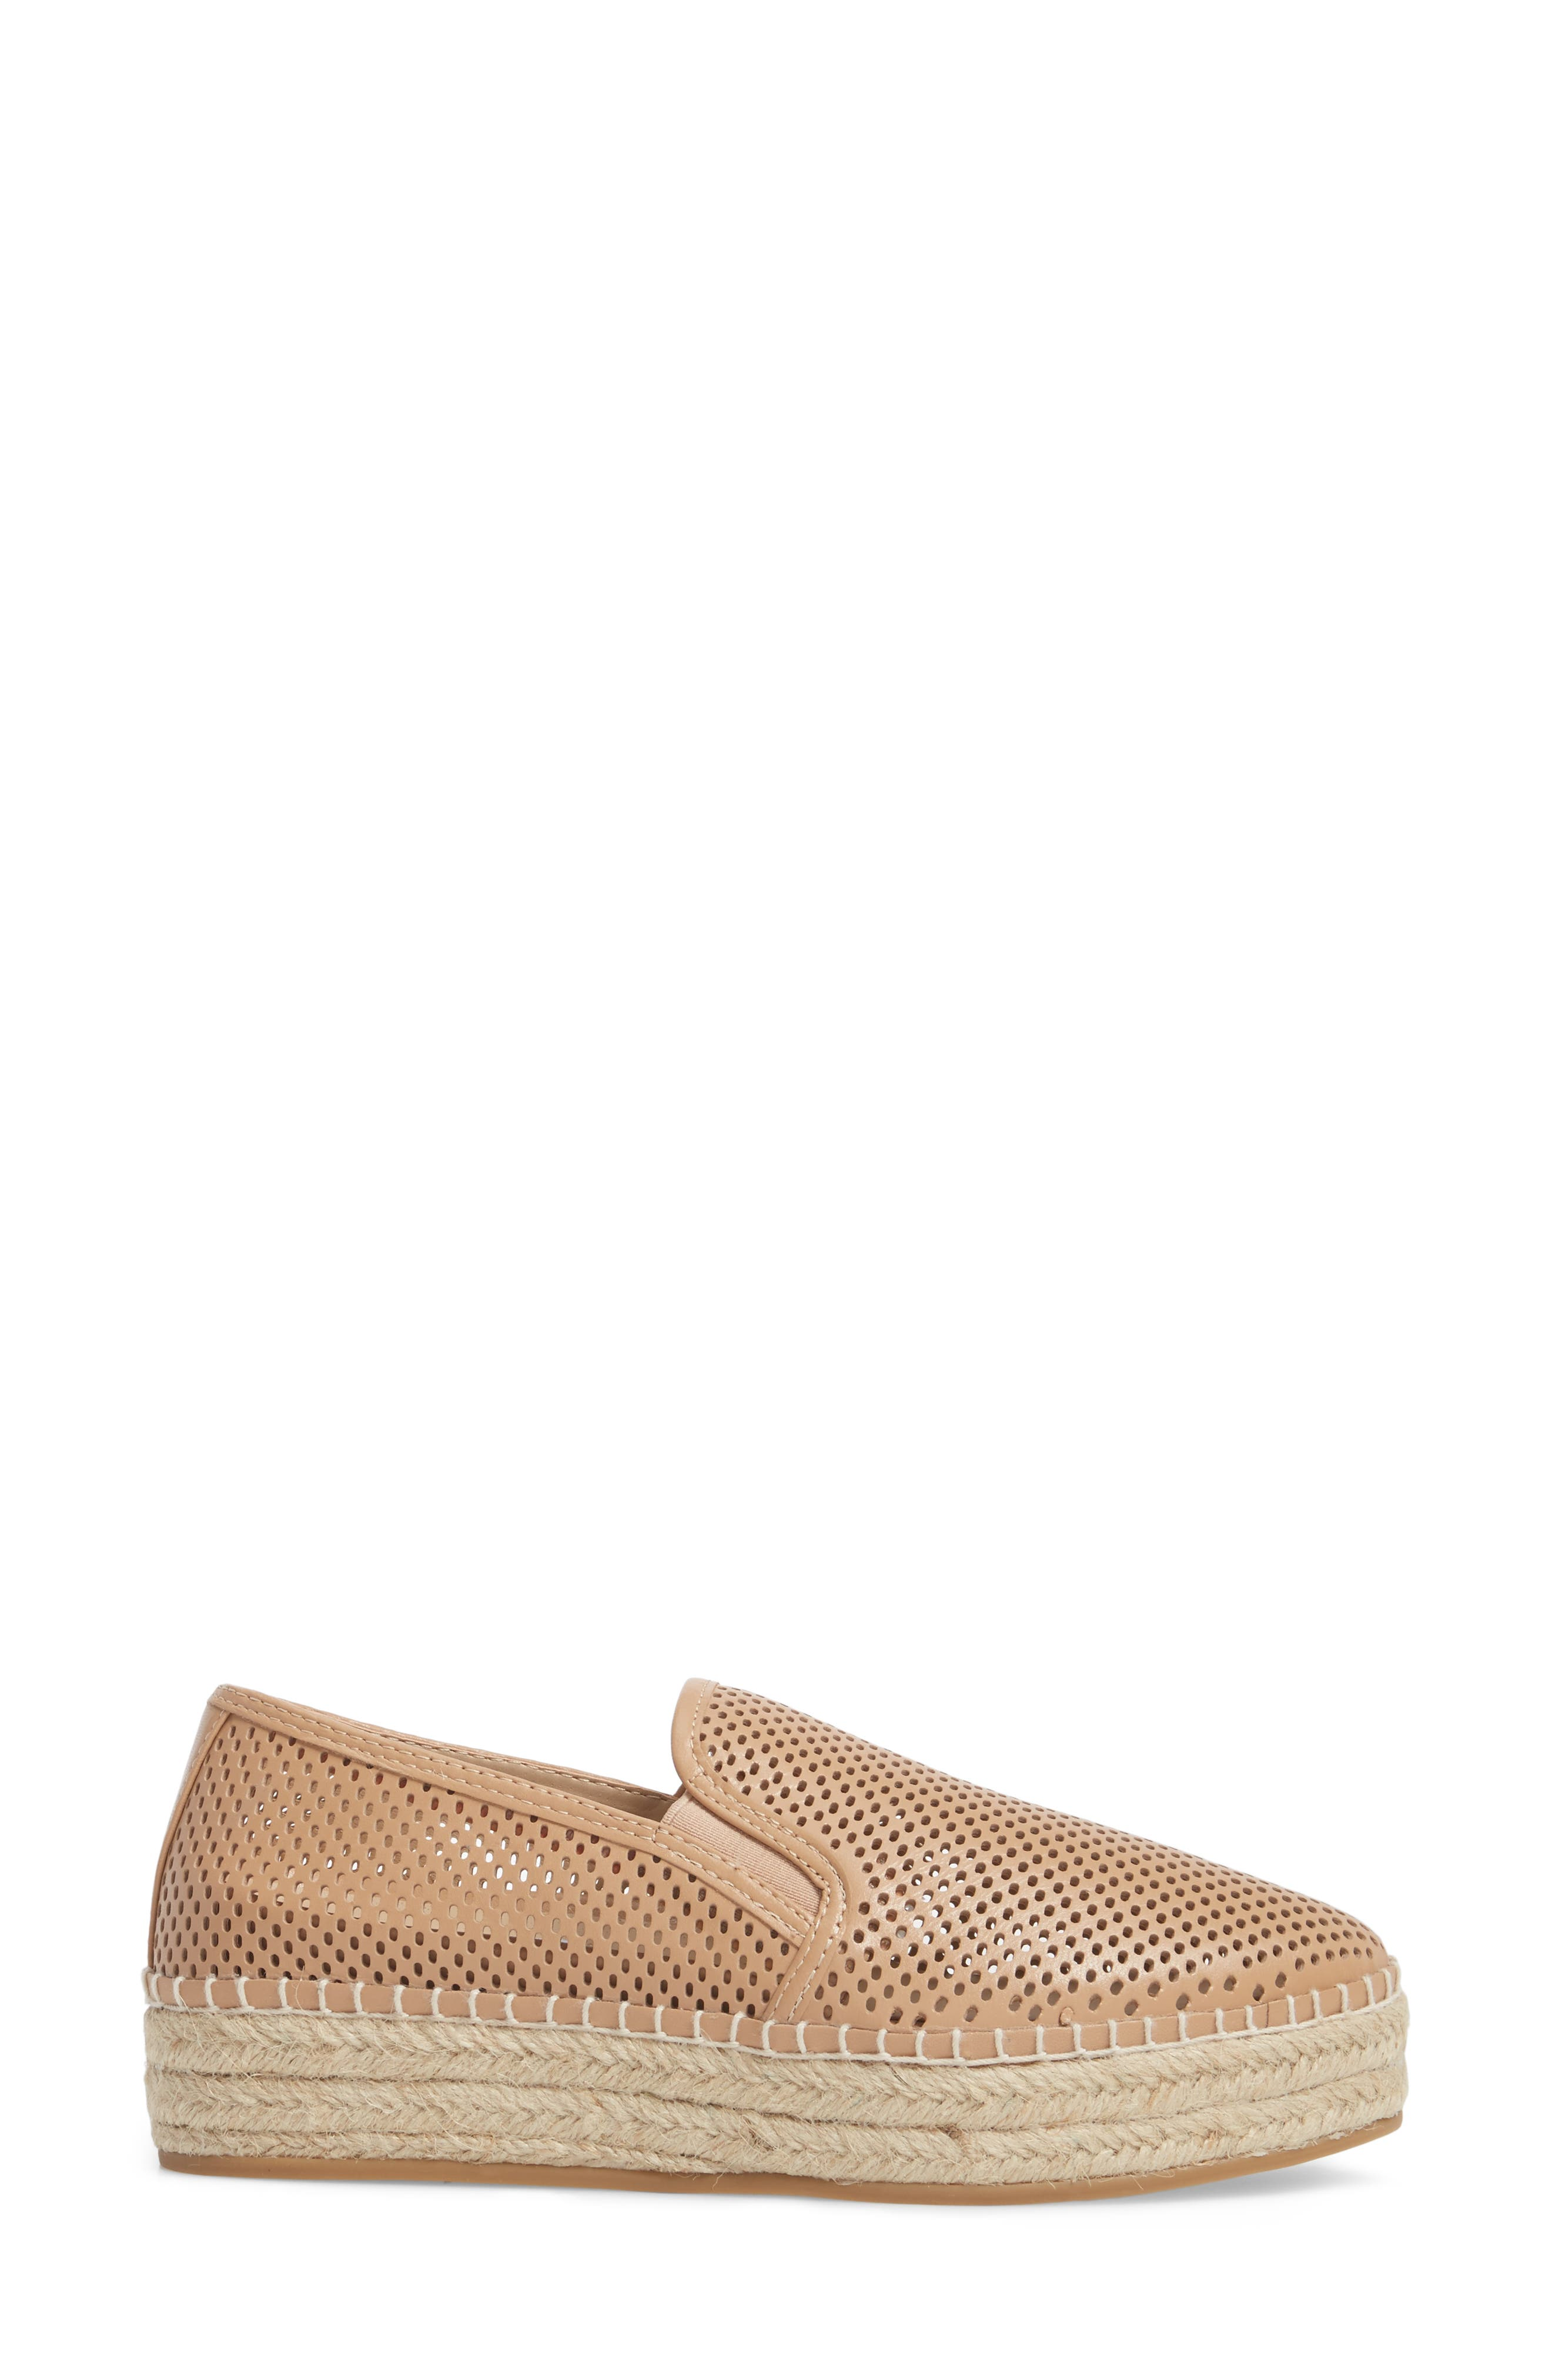 Wright Perforated Platform Espadrille,                             Alternate thumbnail 3, color,                             Natural Leather